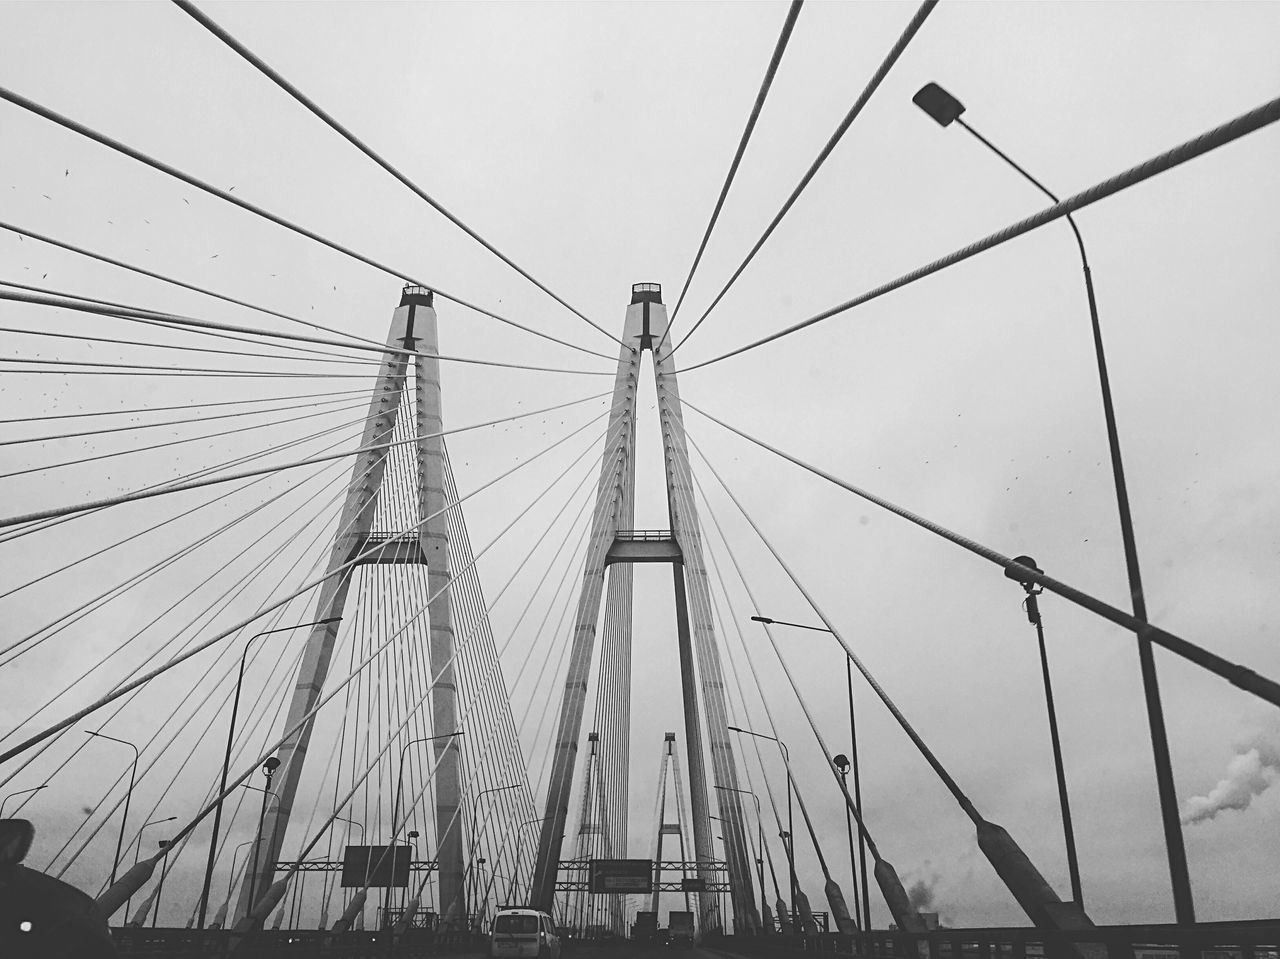 Transportation Cable Mode Of Transport Mast Day Outdoors Sky Low Angle View Connection Nautical Vessel Travel Suspension Bridge Bridge - Man Made Structure Built Structure Architecture Travel Destinations No People Sailboat Sailing Ship City Saint Petersburg